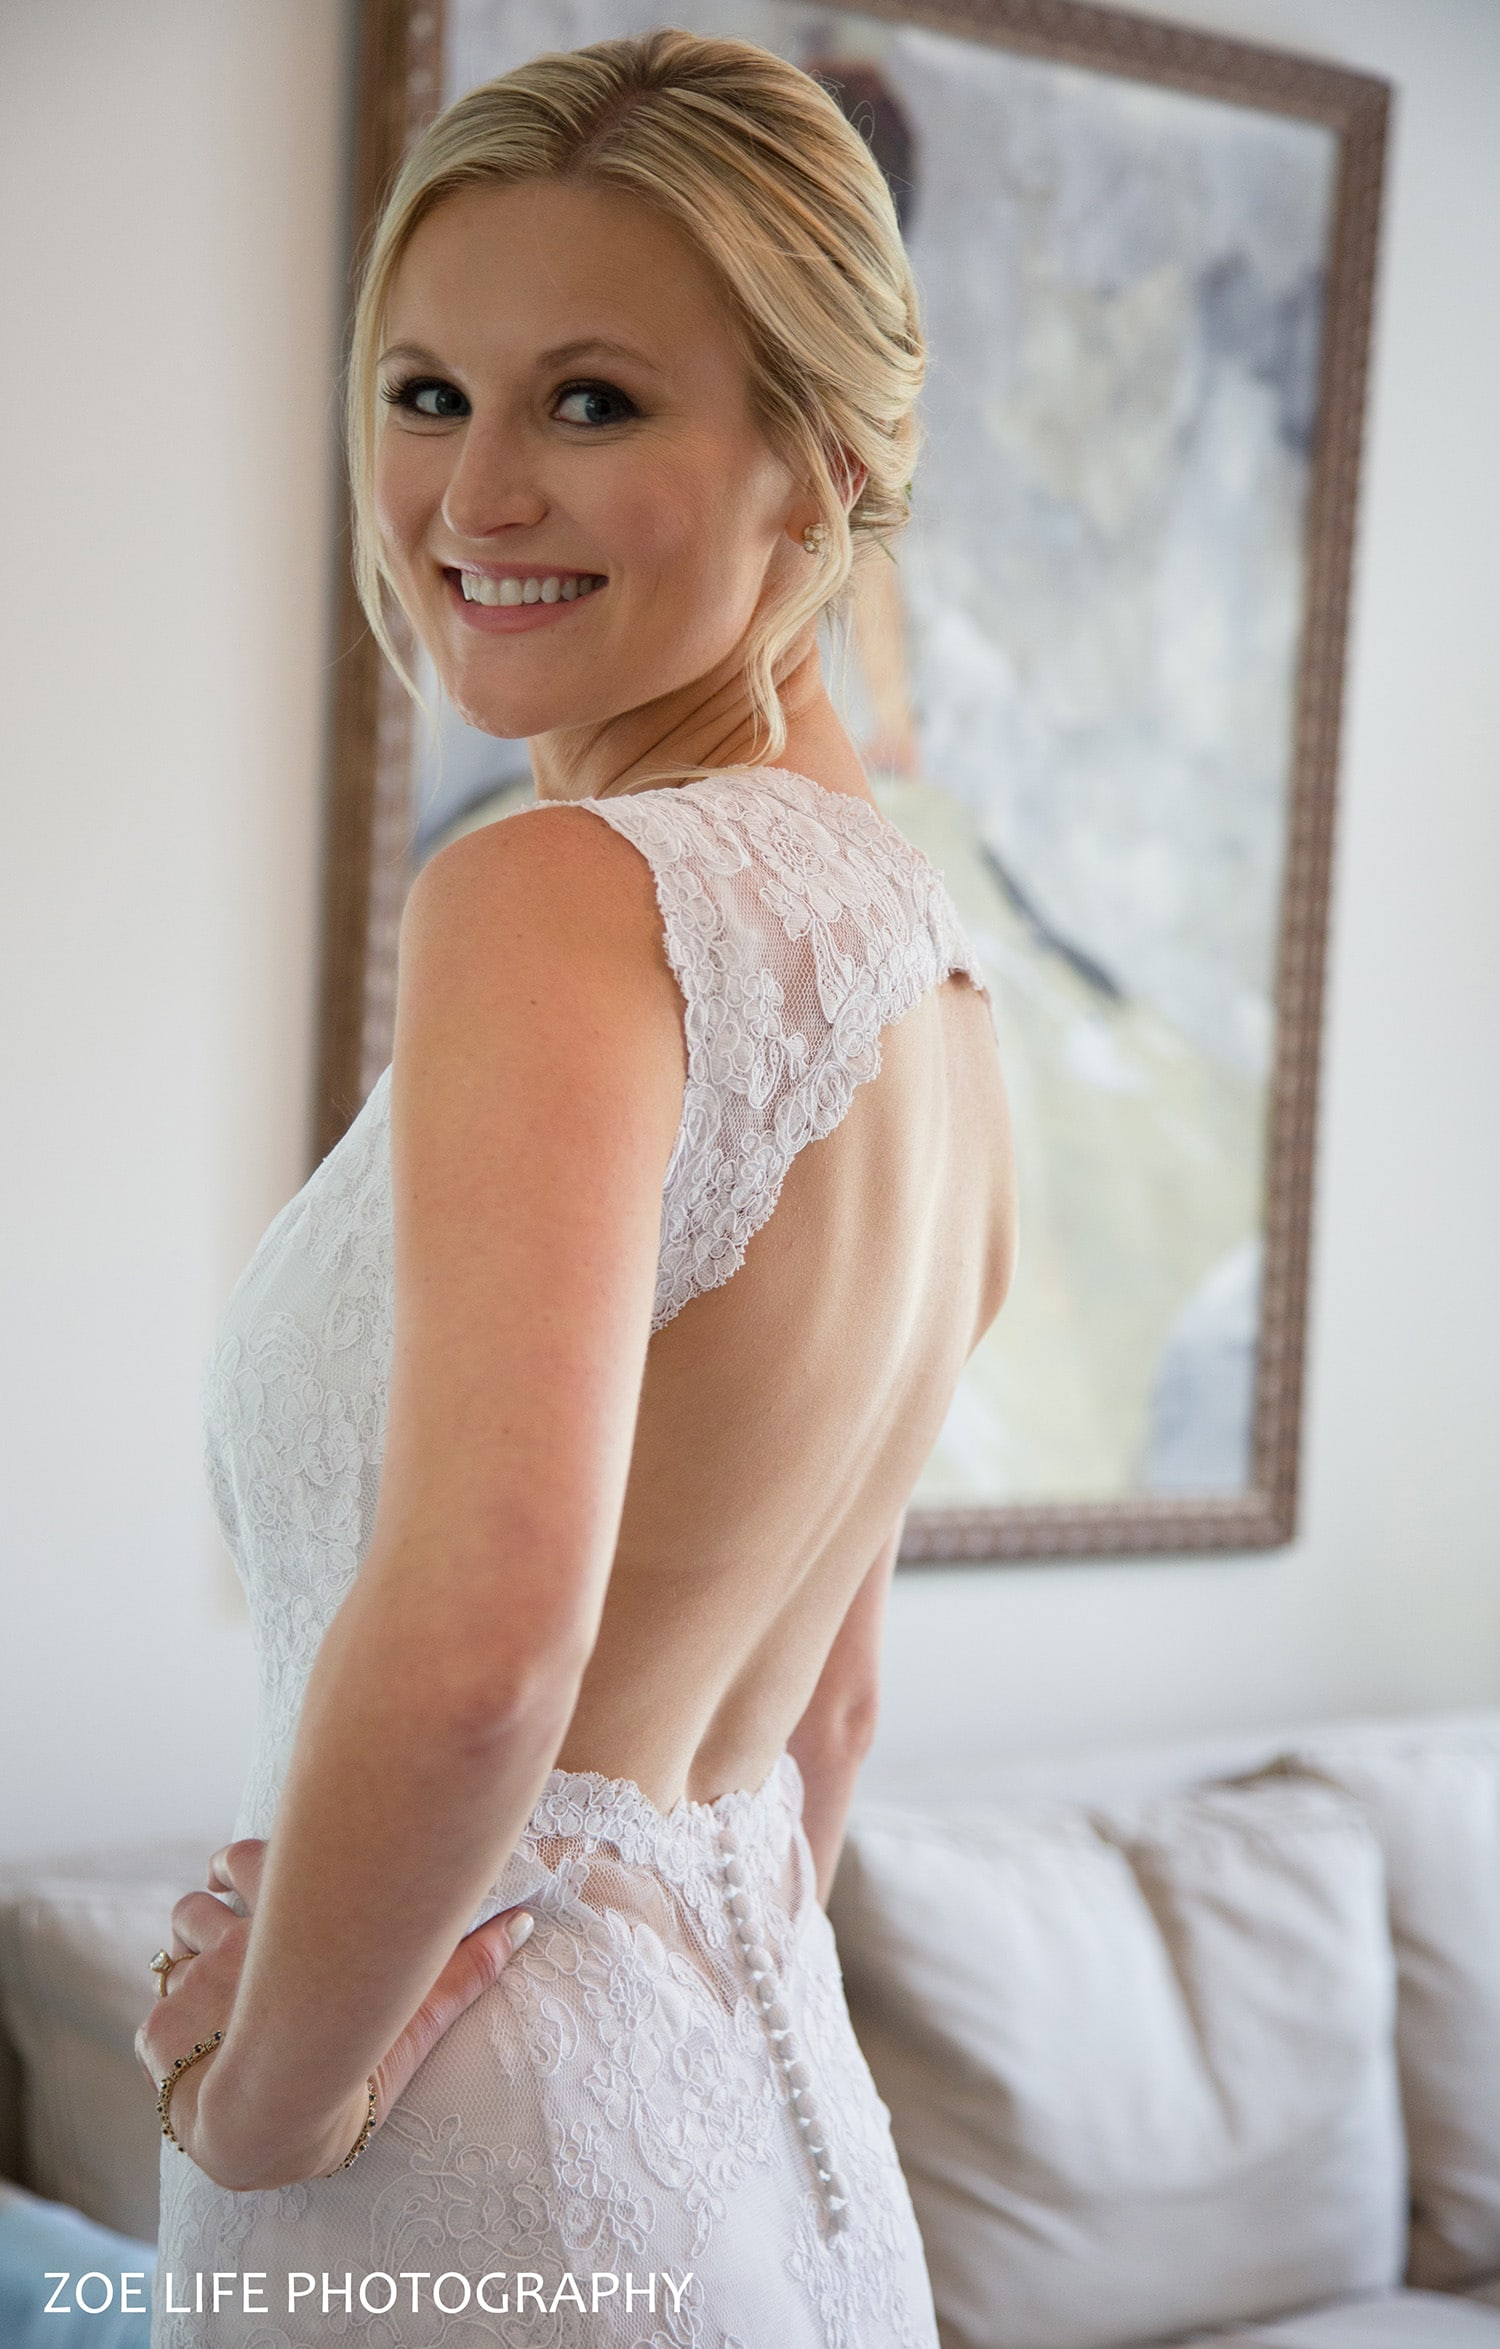 A gorgeous bride showing off her wedding dress